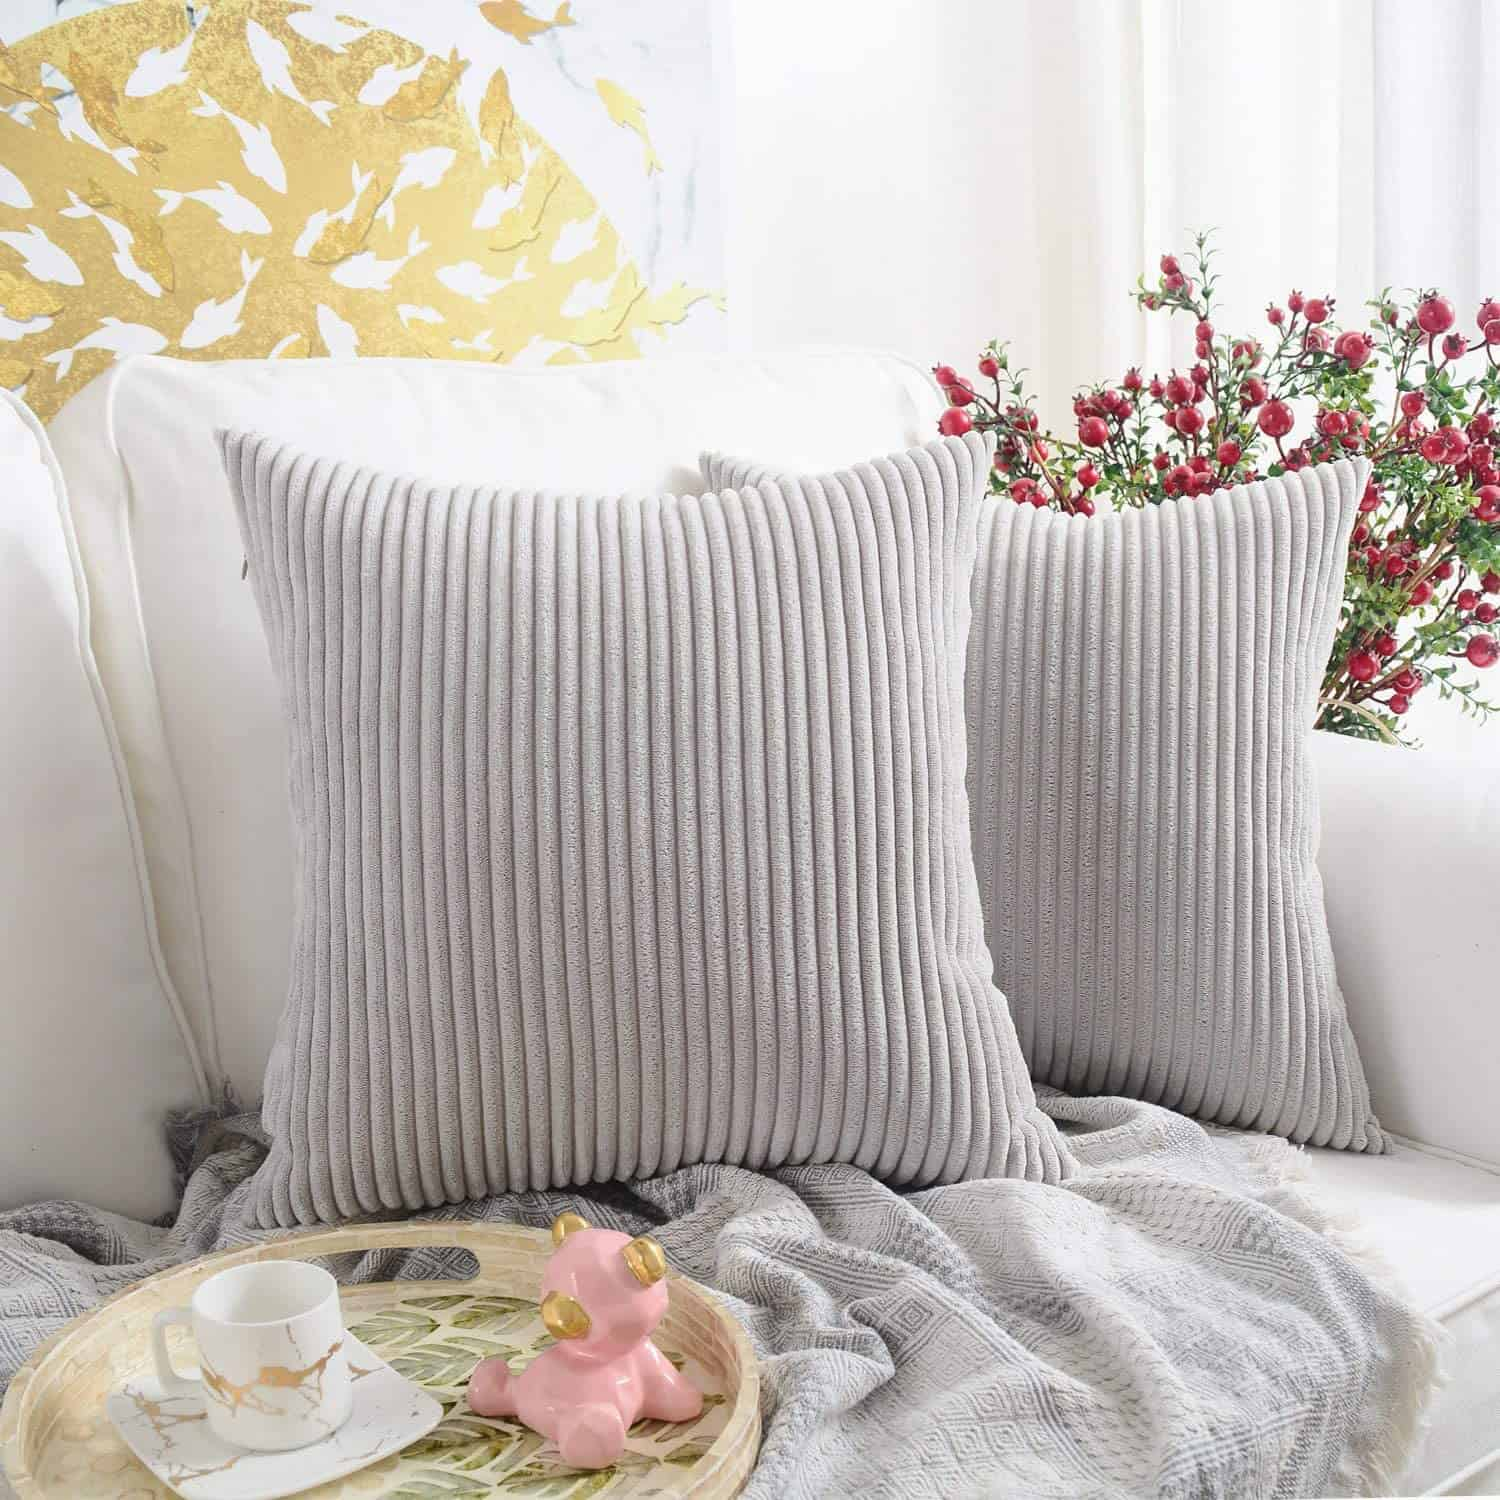 Textured Pillow Ideas For a Gray Couch